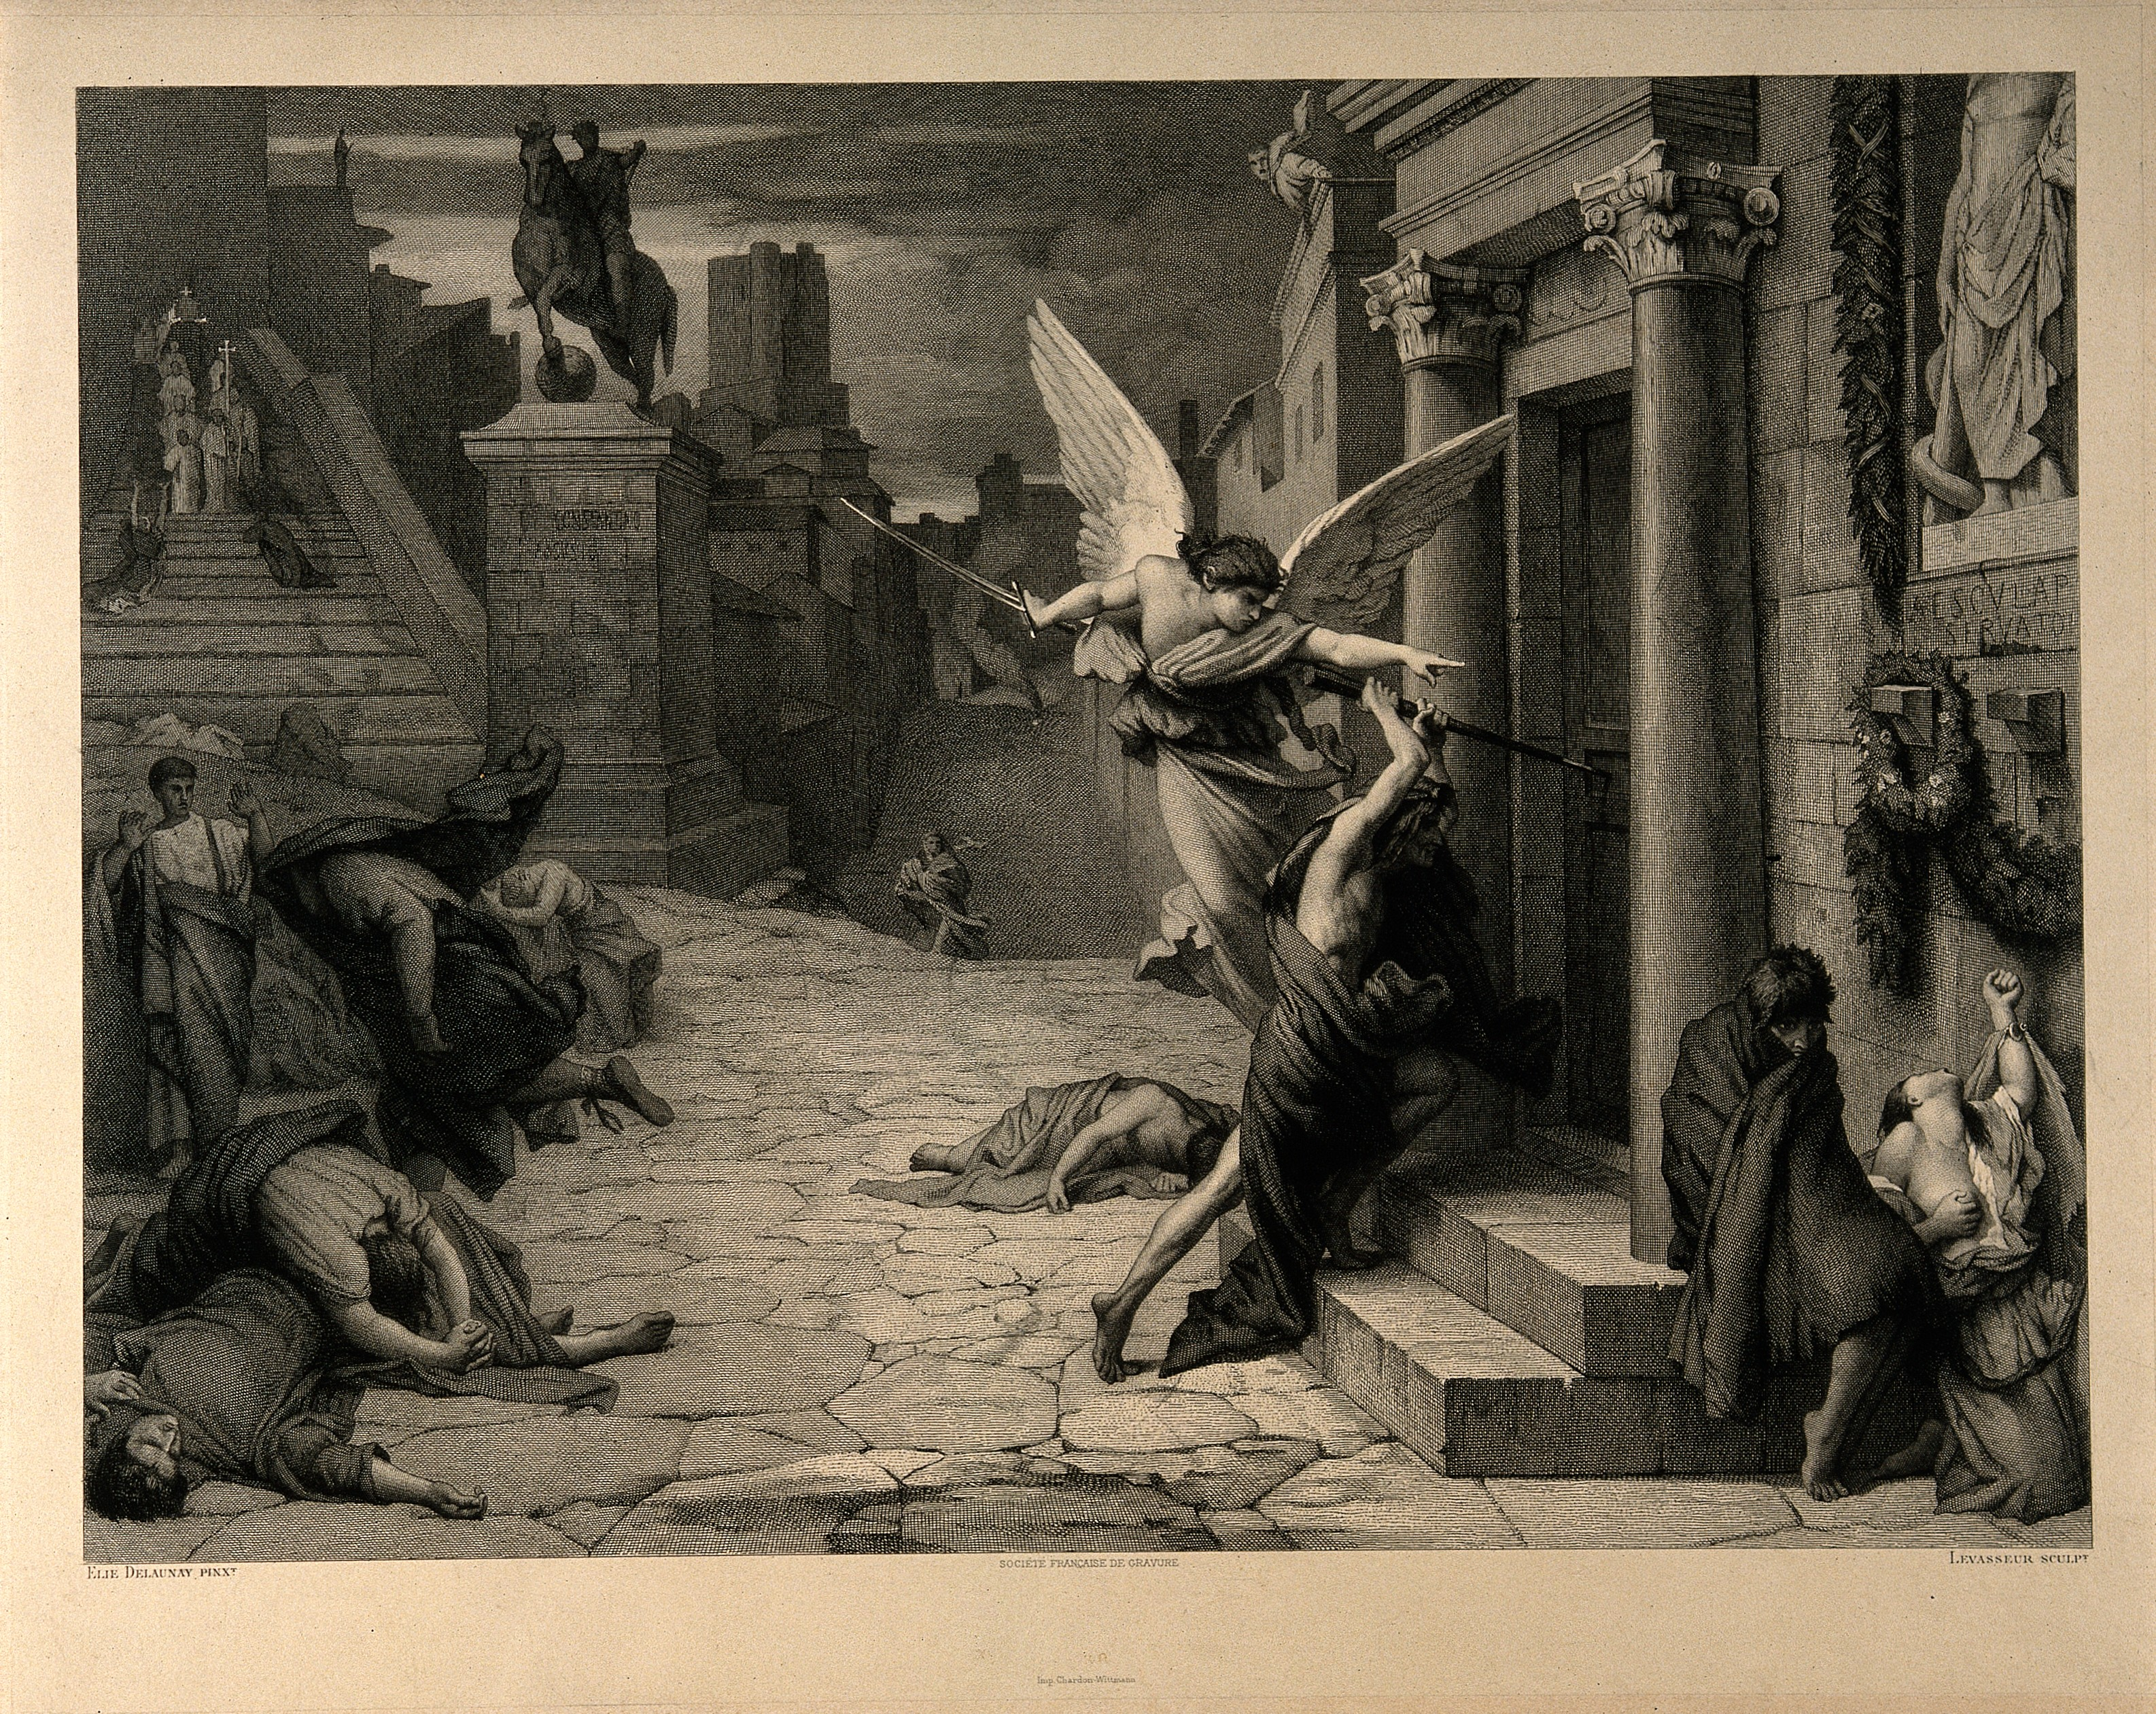 The angel of death striking a door during the plague of Rome; engraving by Levasseur after Jules-Elie Delaunay